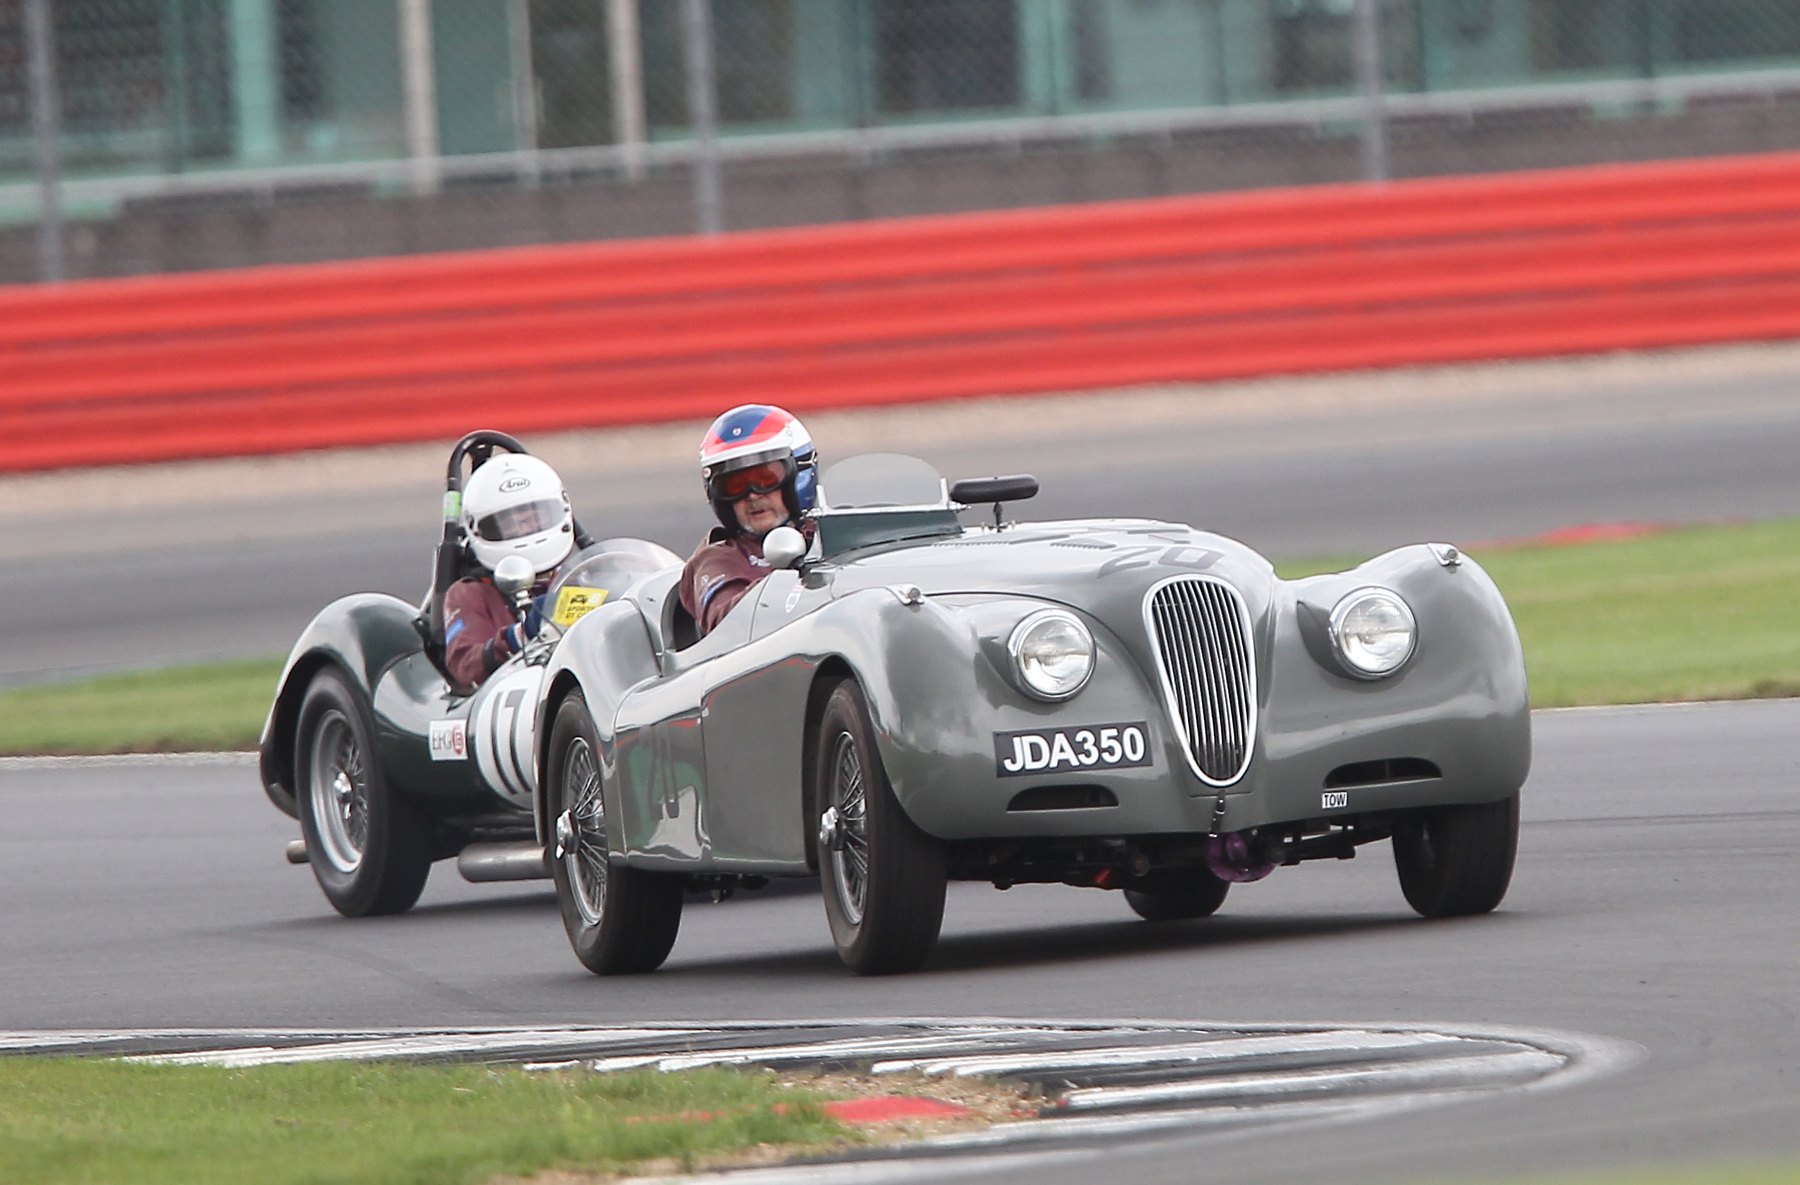 Another was that between John Harper in the XK120 and Alex Quattlebaum in the LECo, until the pitstops intervened. They even have matching race suits!  Photo - Mick Walker